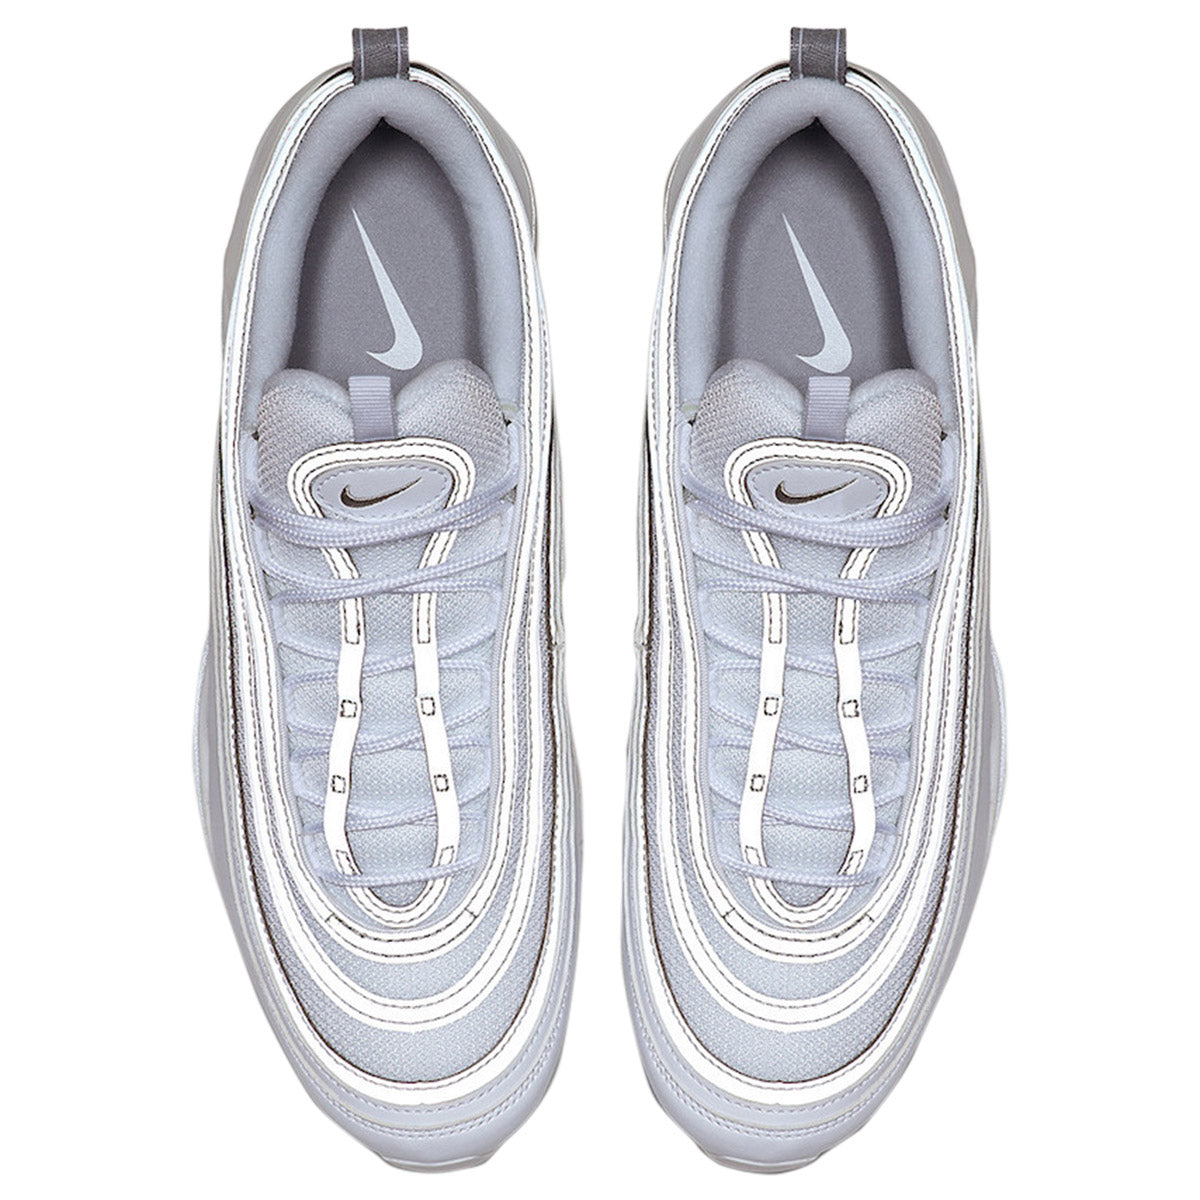 Nike Air Max 97 Mens Sneakers 921826 105, WhiteReflective SilverWolf Grey